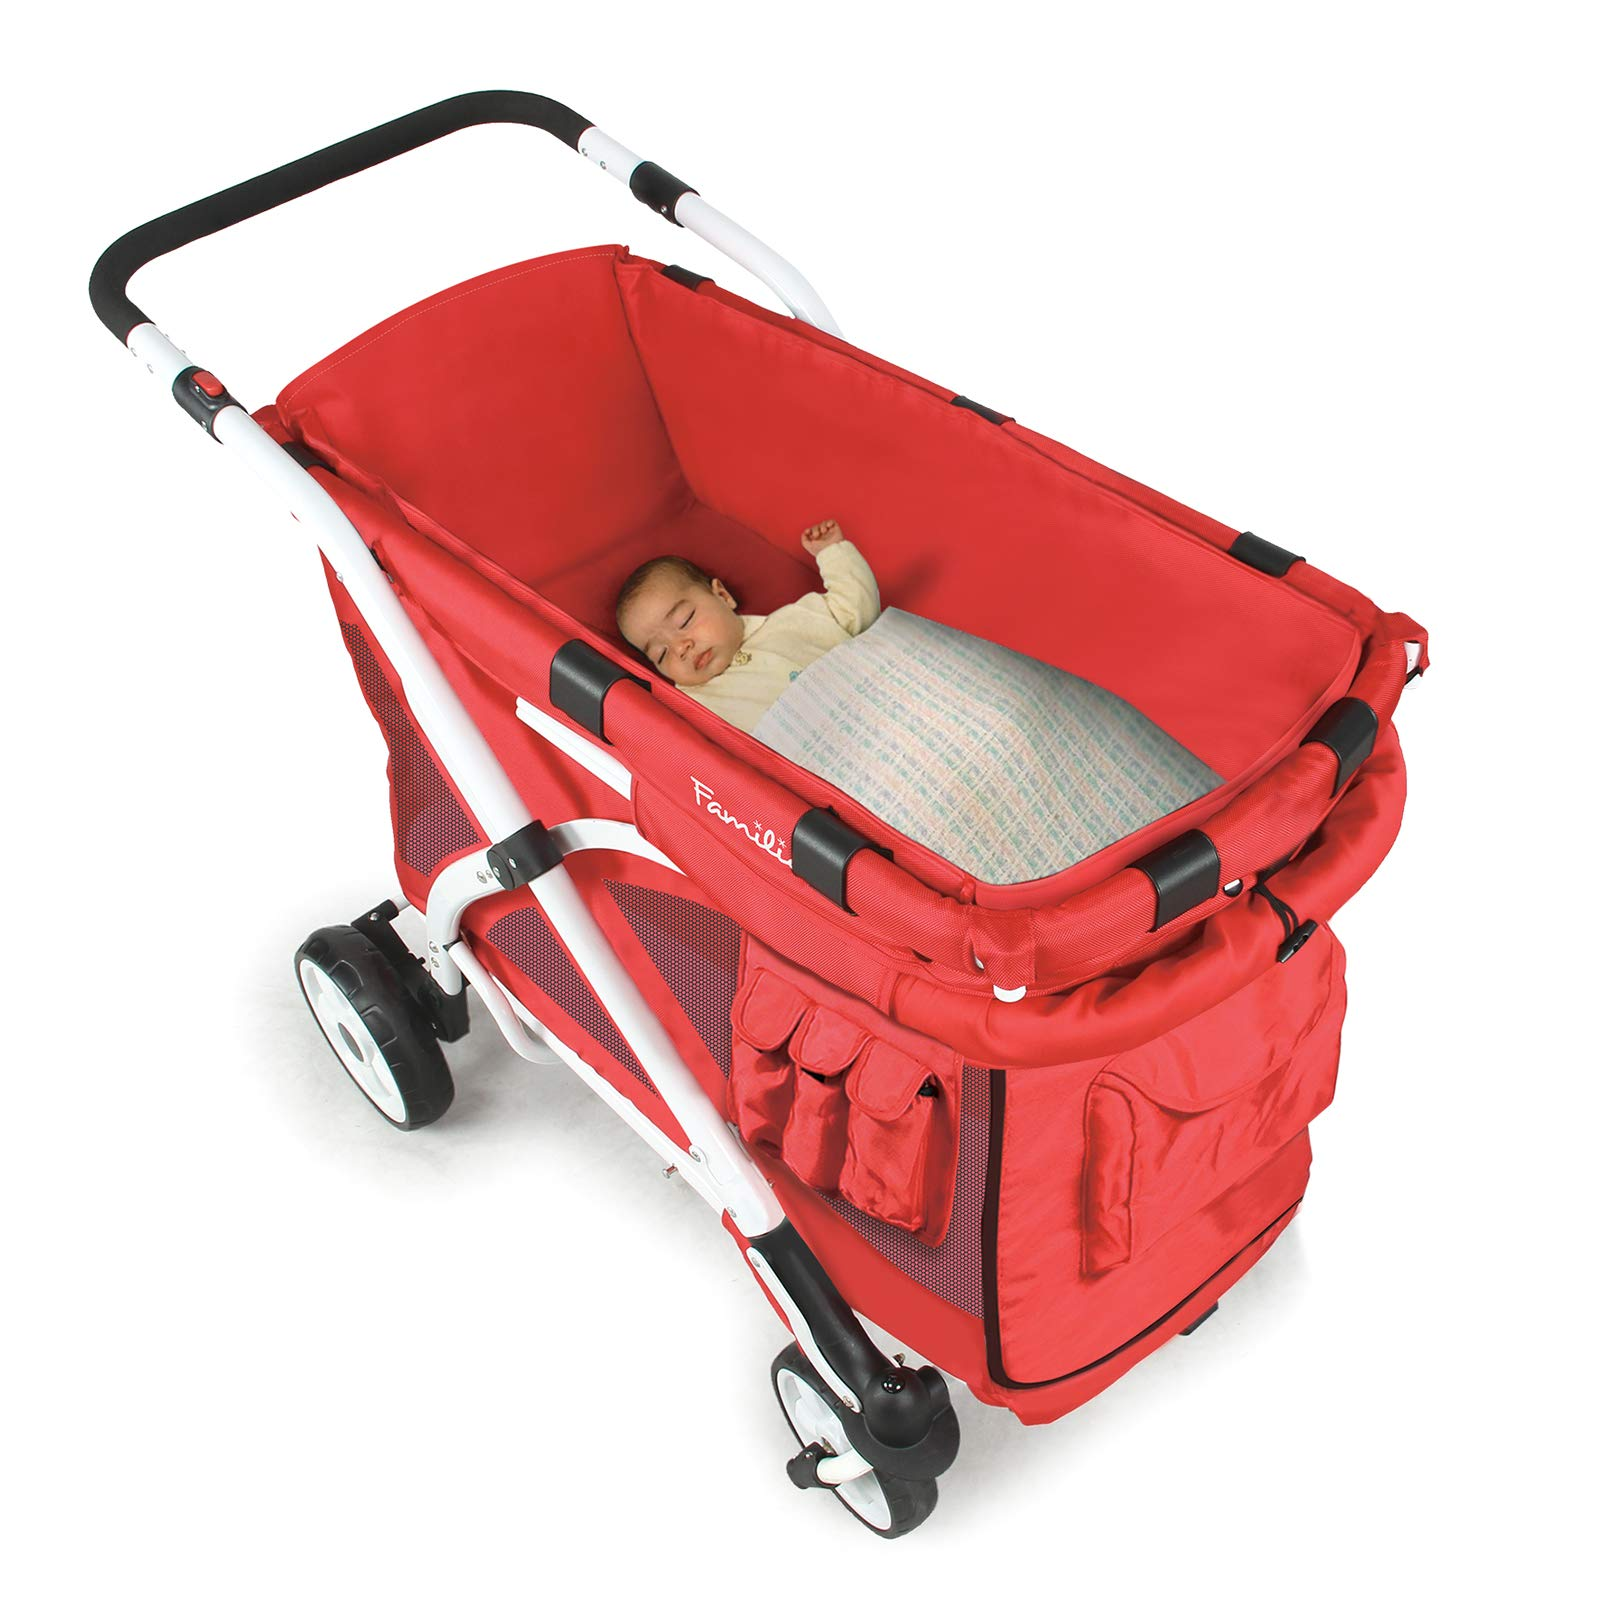 Familidoo Multi-Purpose 6 in 1 Large Twin Size Toddler Baby Folding Stroller Chariot Wagon, Red by FAMILIDOO (Image #3)